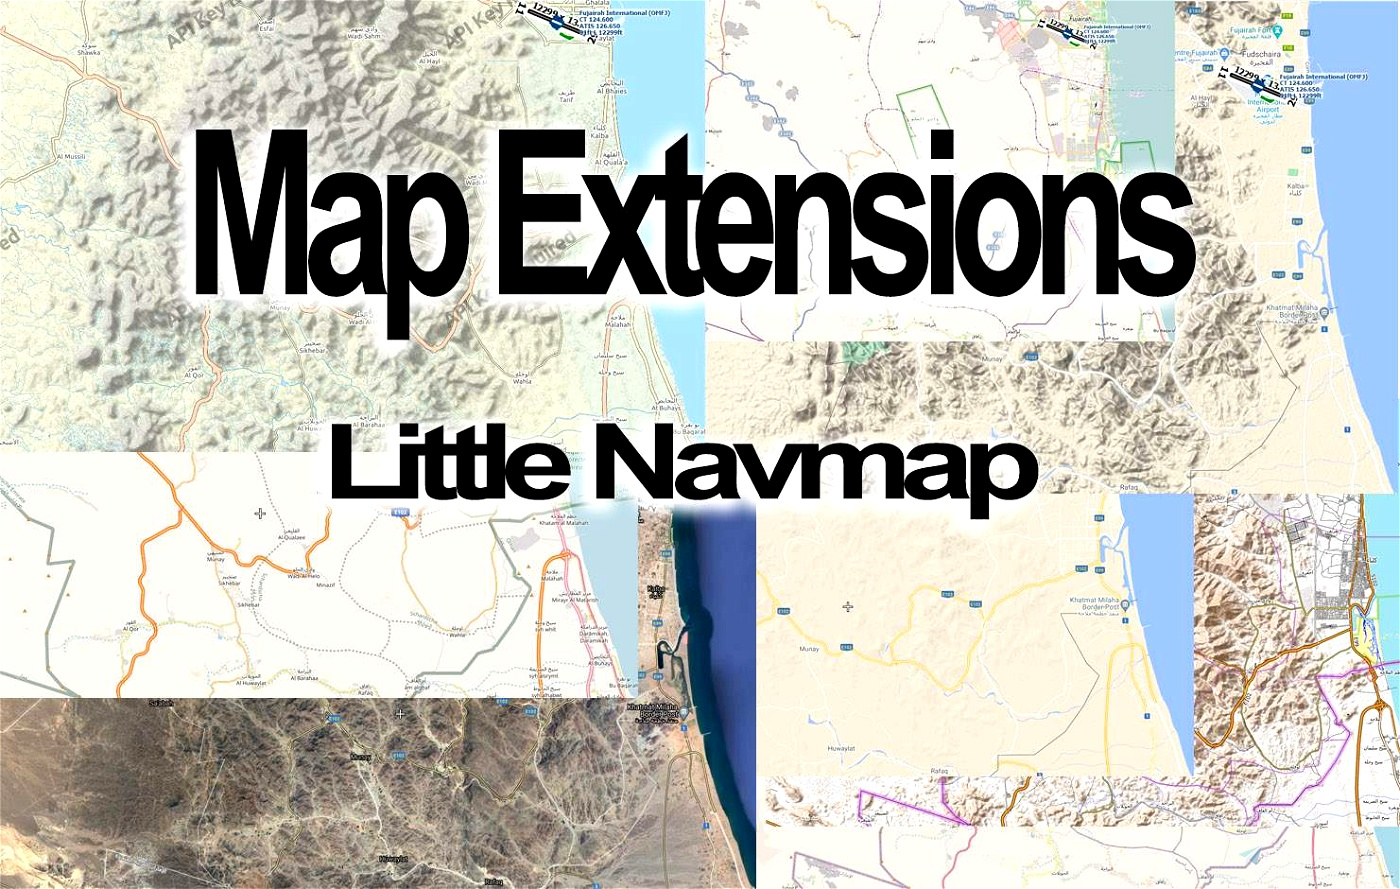 Map extensions for Little Navmap (LNM) Flight Simulator 2020